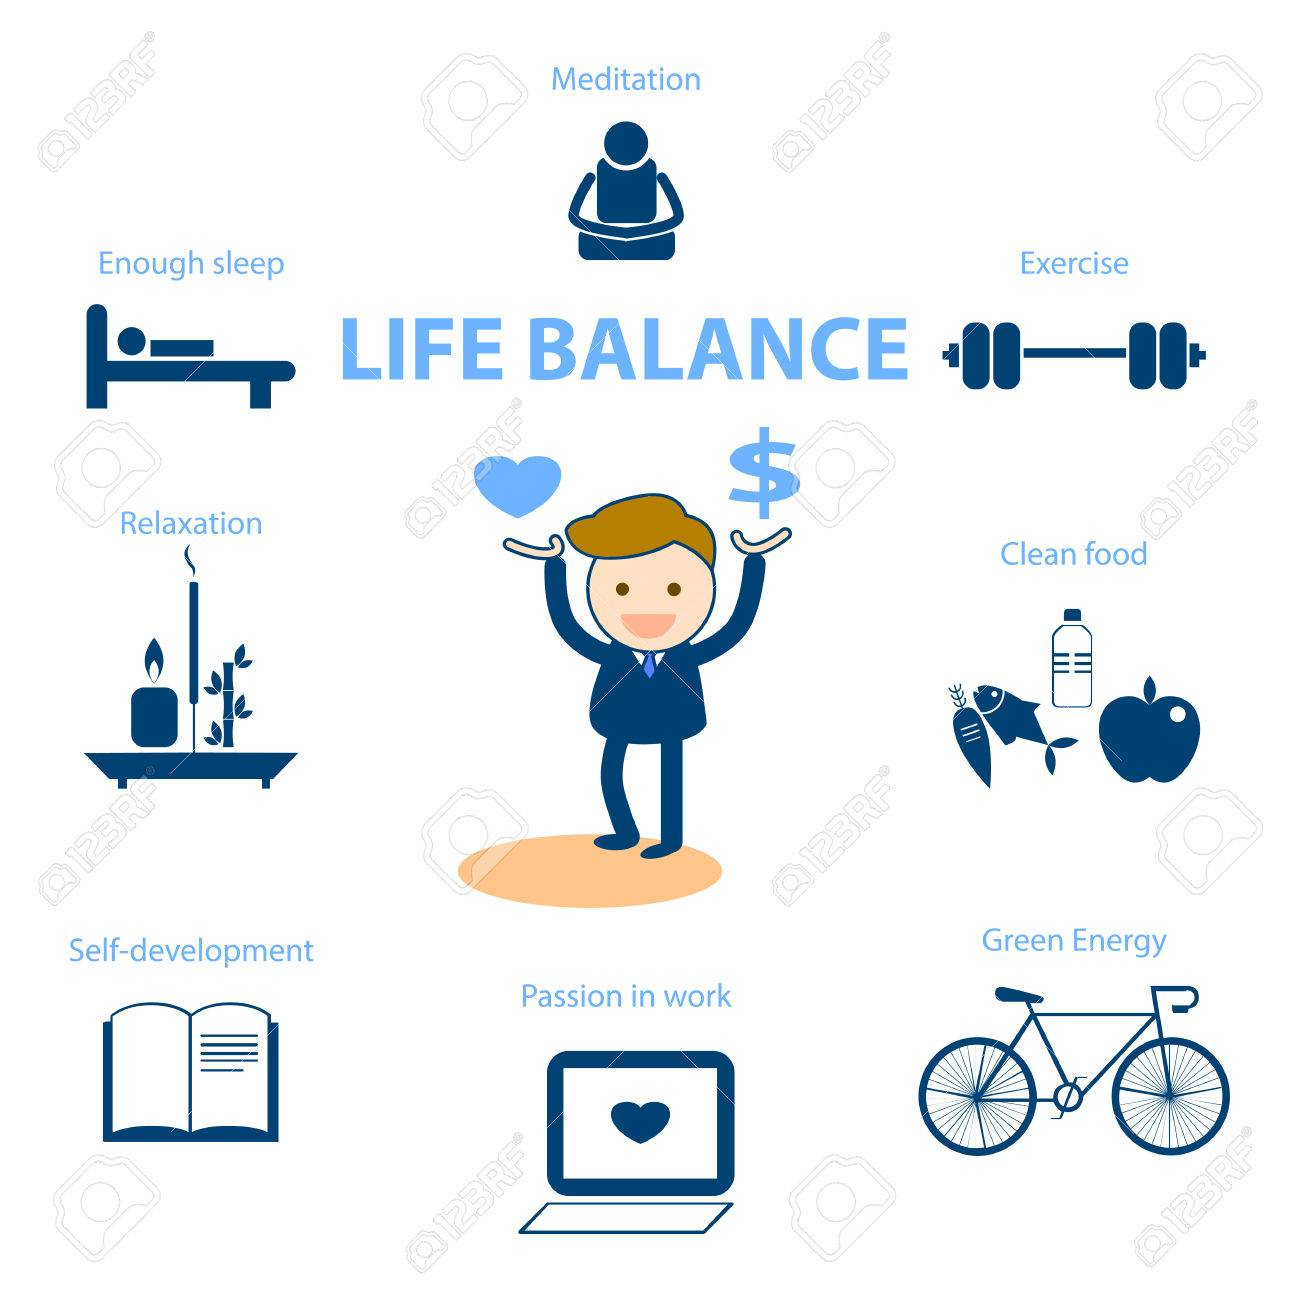 well being concept illustration for life balance - 37361978